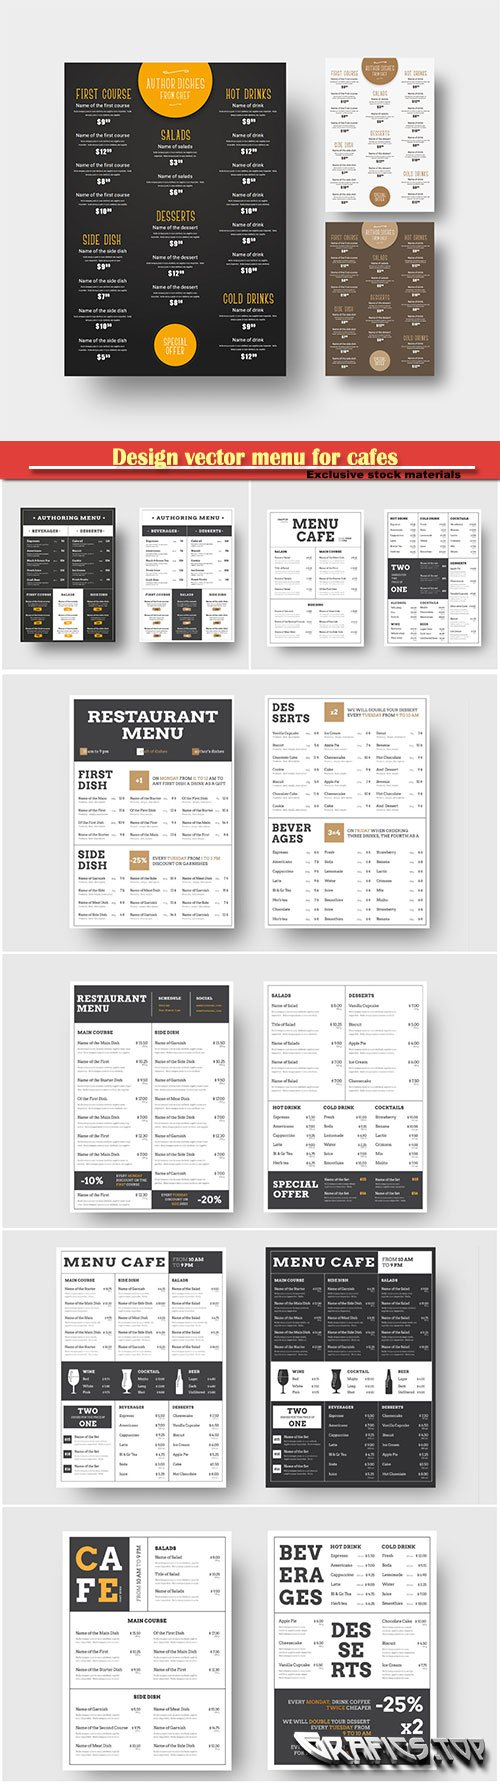 Design vector menu for cafes and restaurants